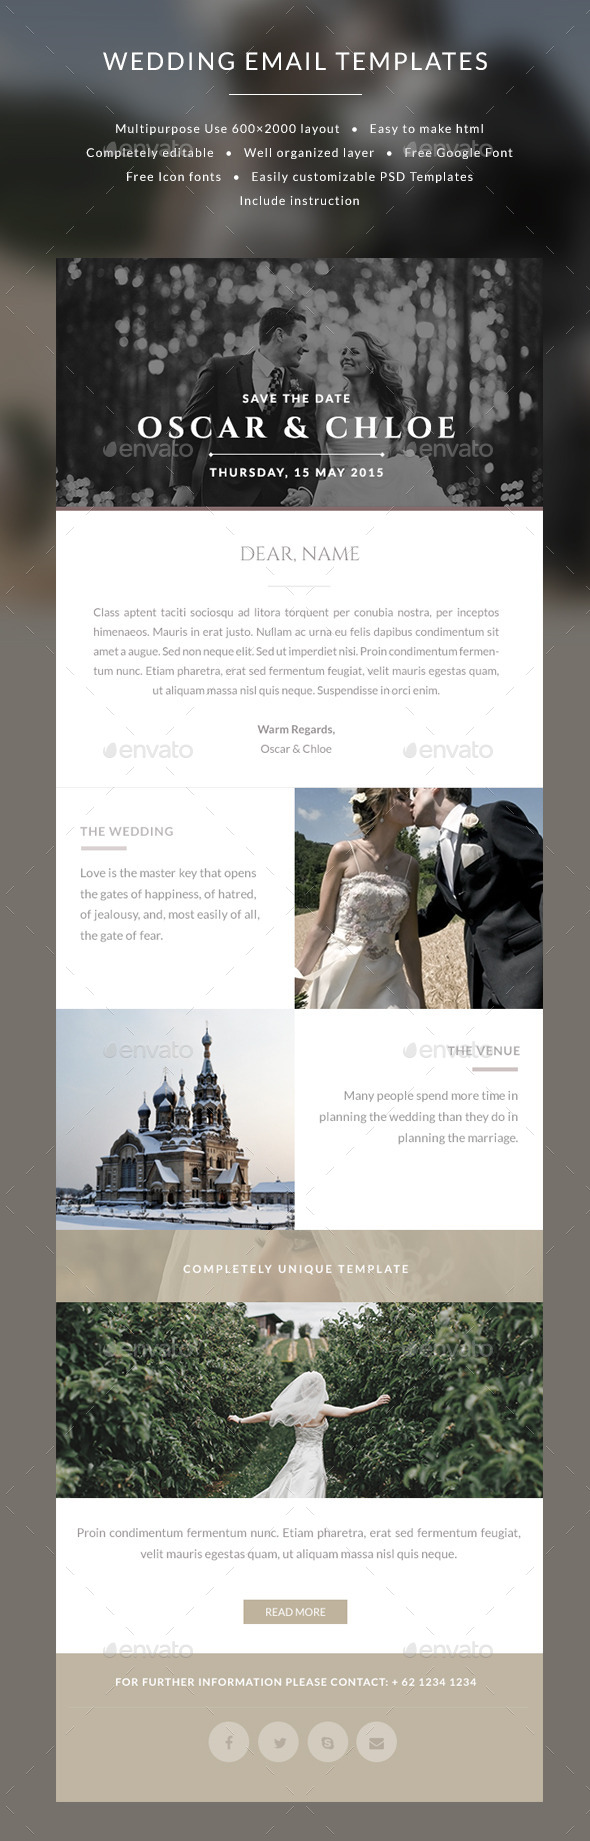 Email Wedding Invitation templates - Oscar - E-newsletters Web Elements